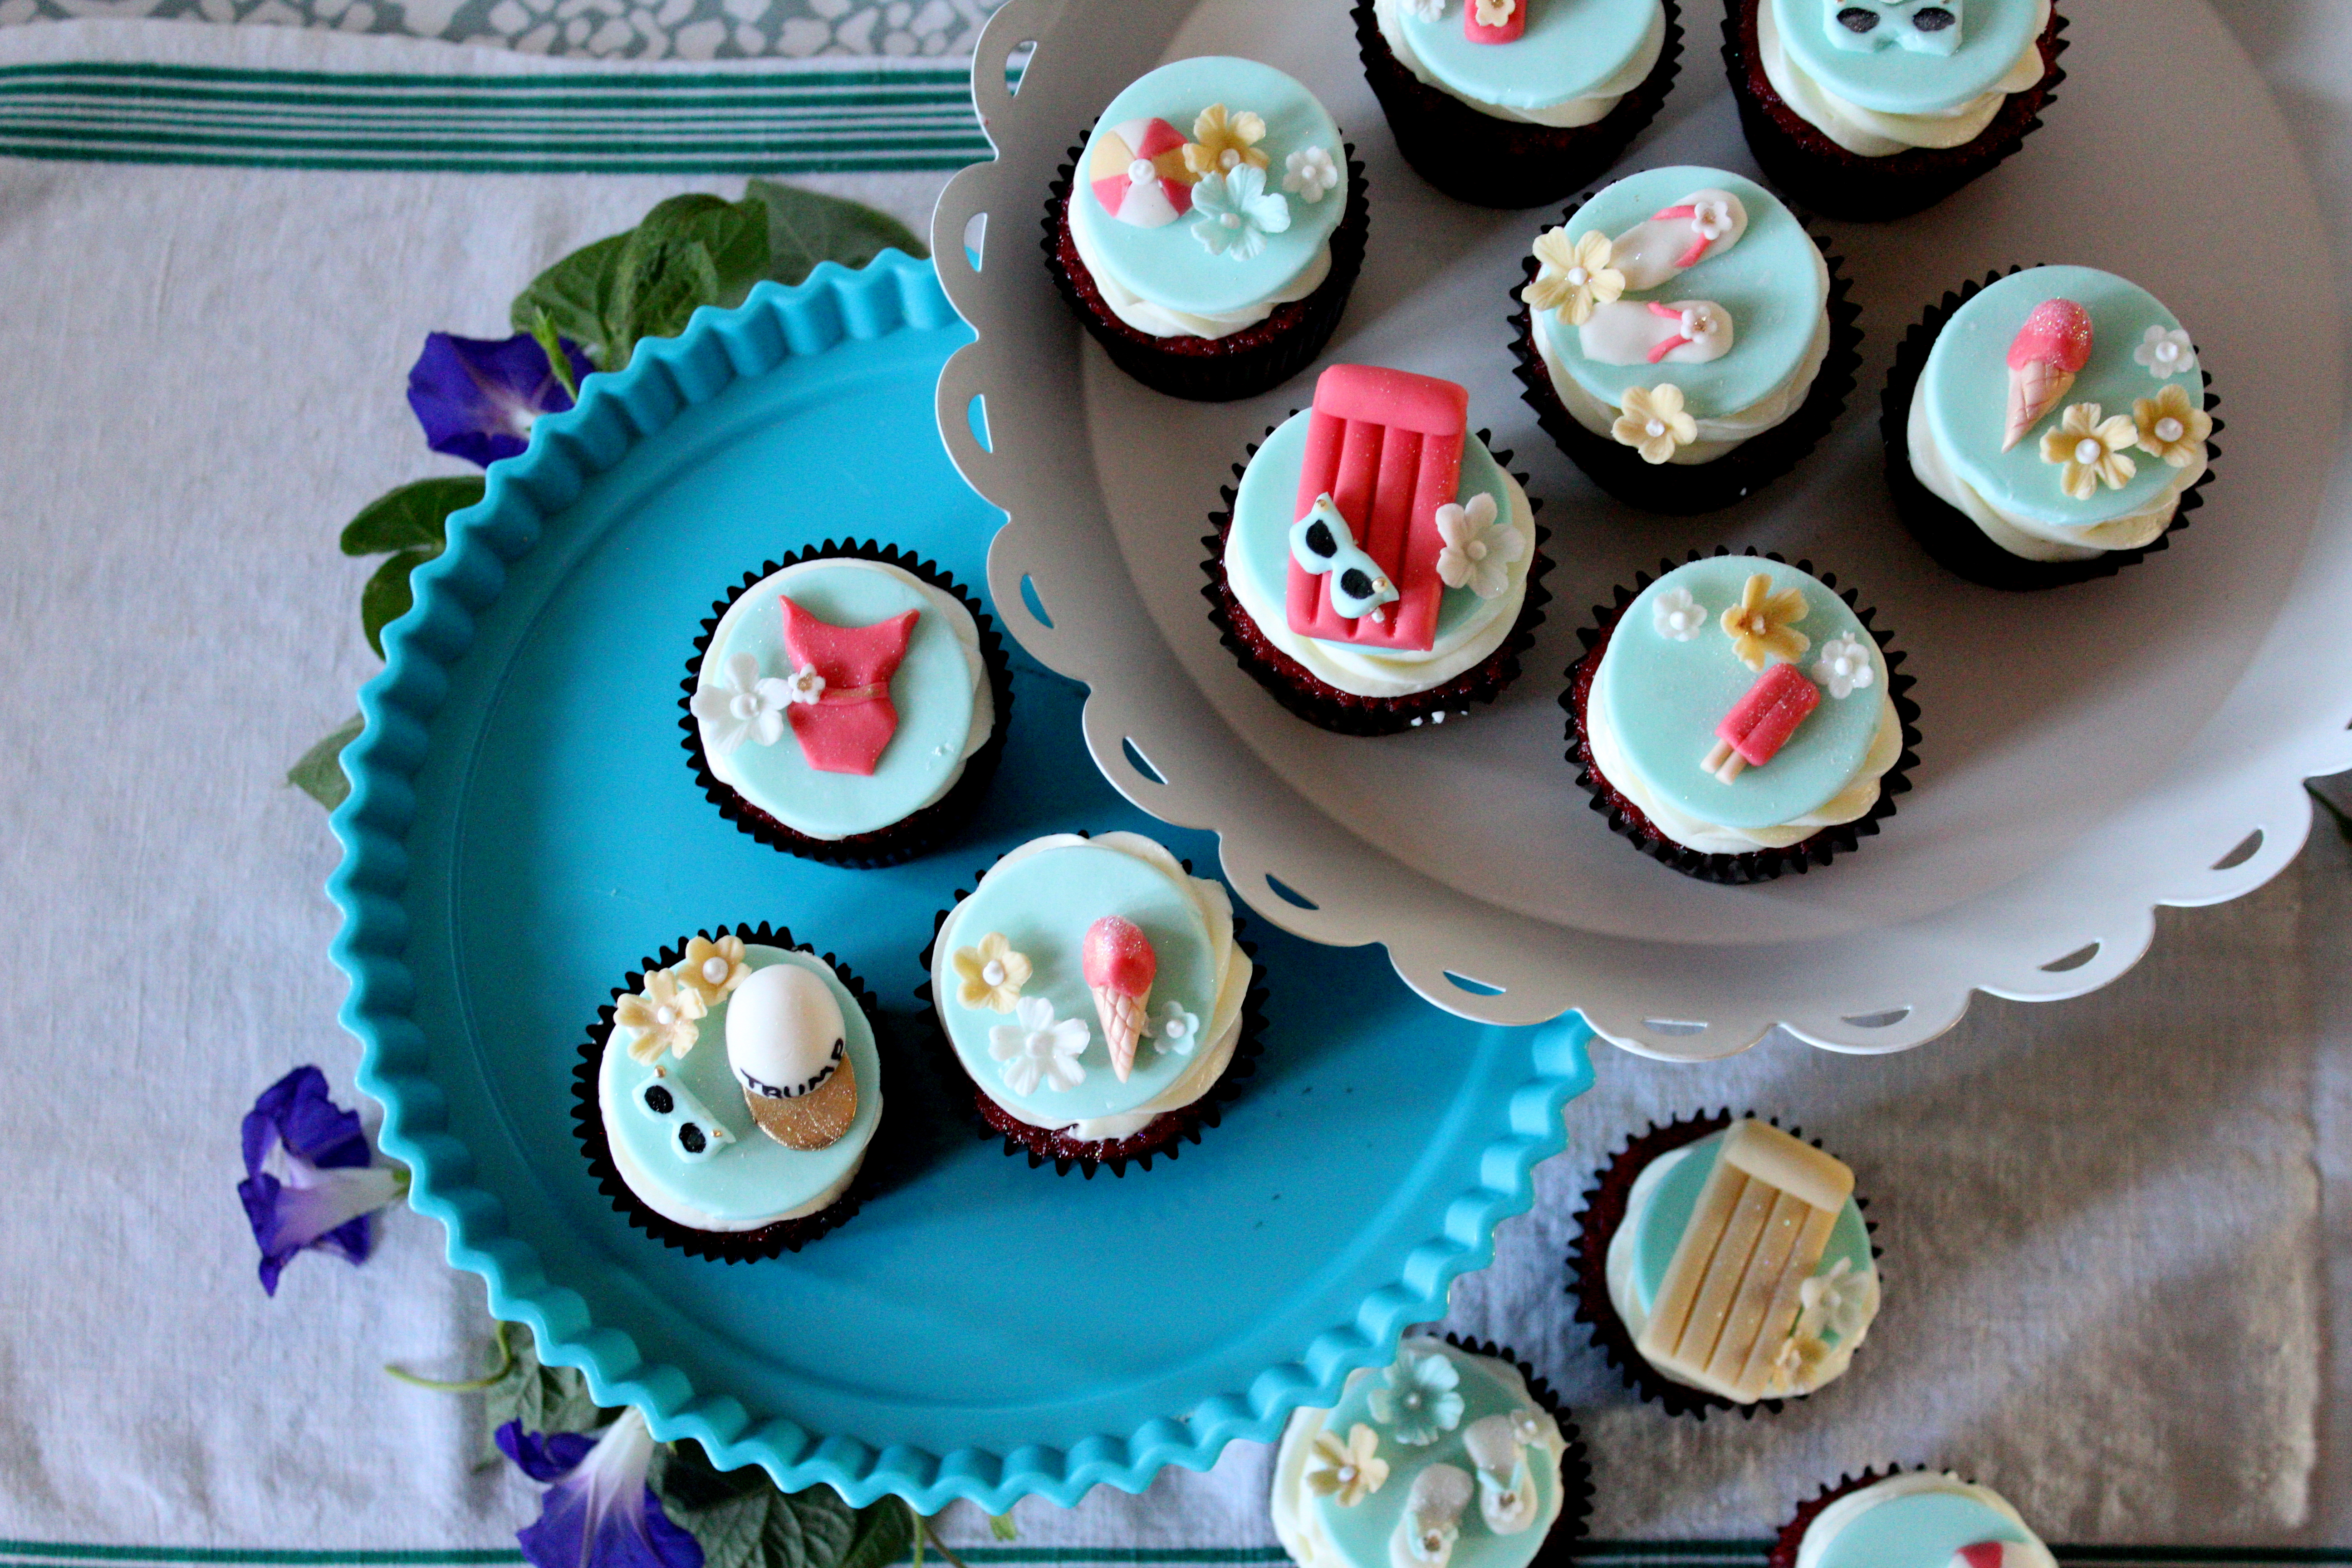 Pool party themed cupcakes.JPG